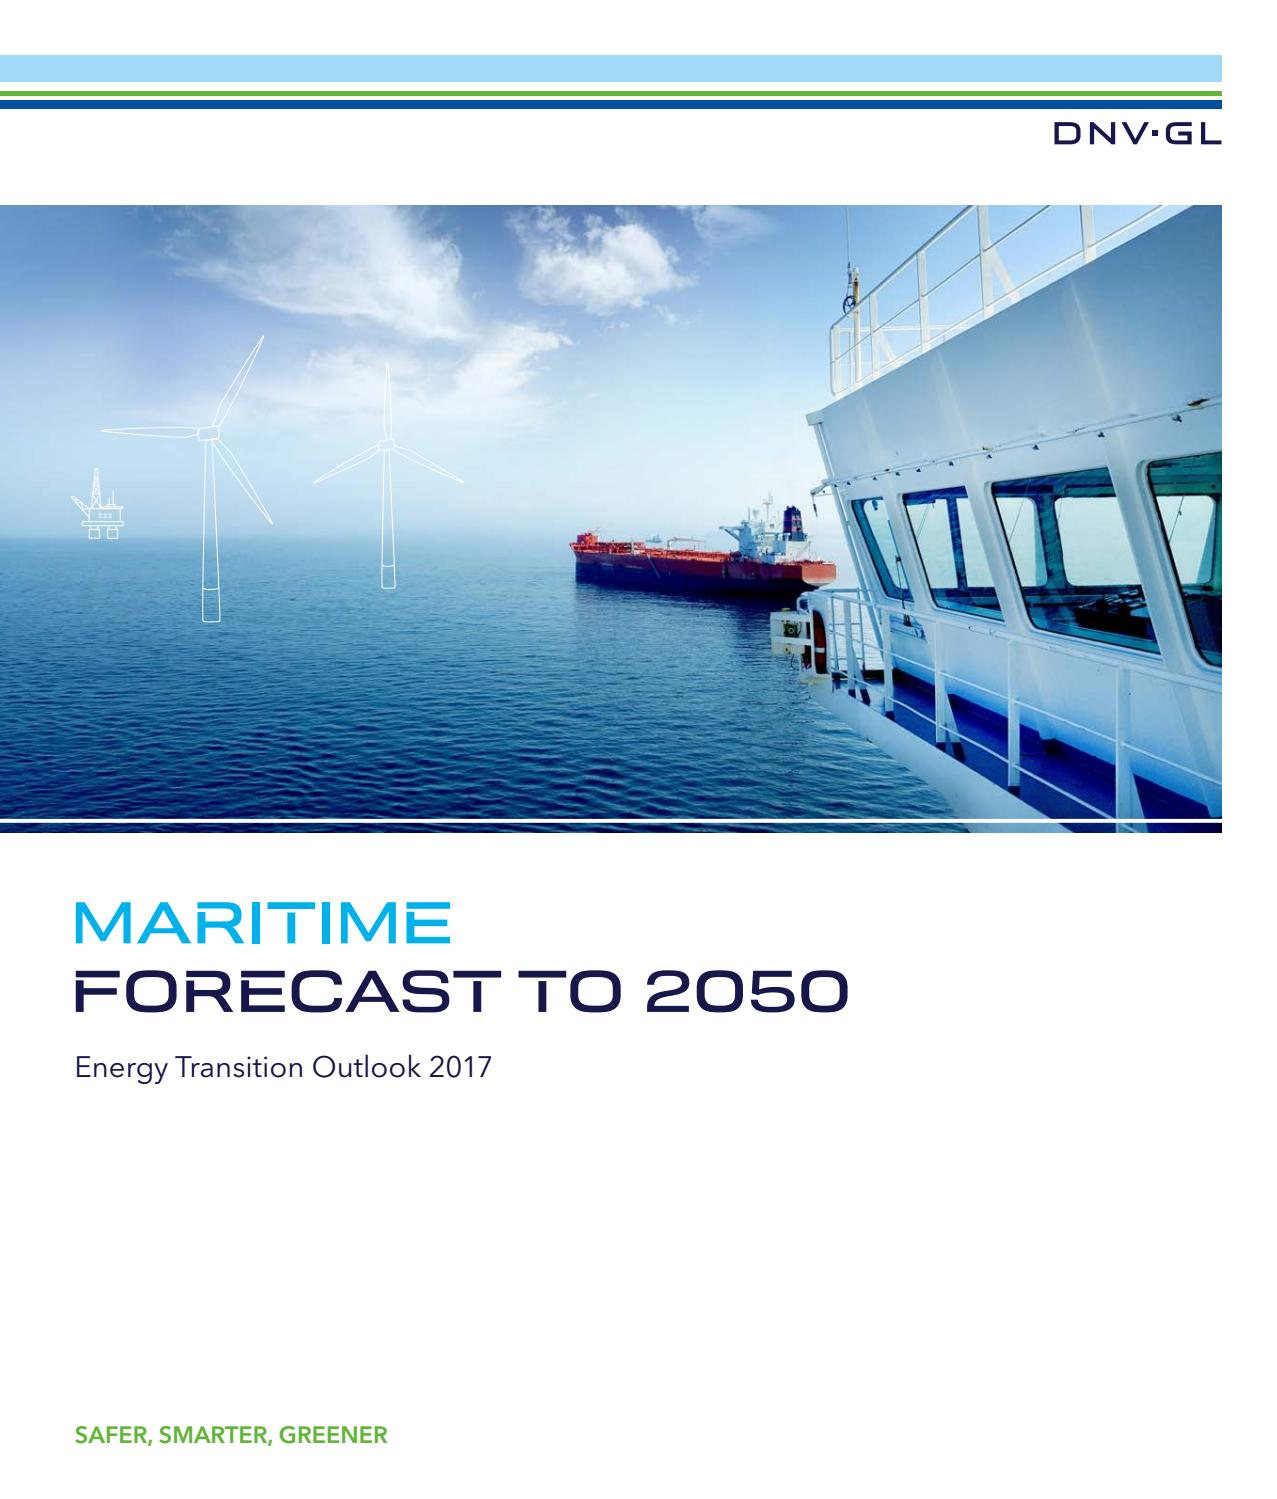 DNV GL 2017 maritime forecast to 2050 by Maritime Professionals - issuu